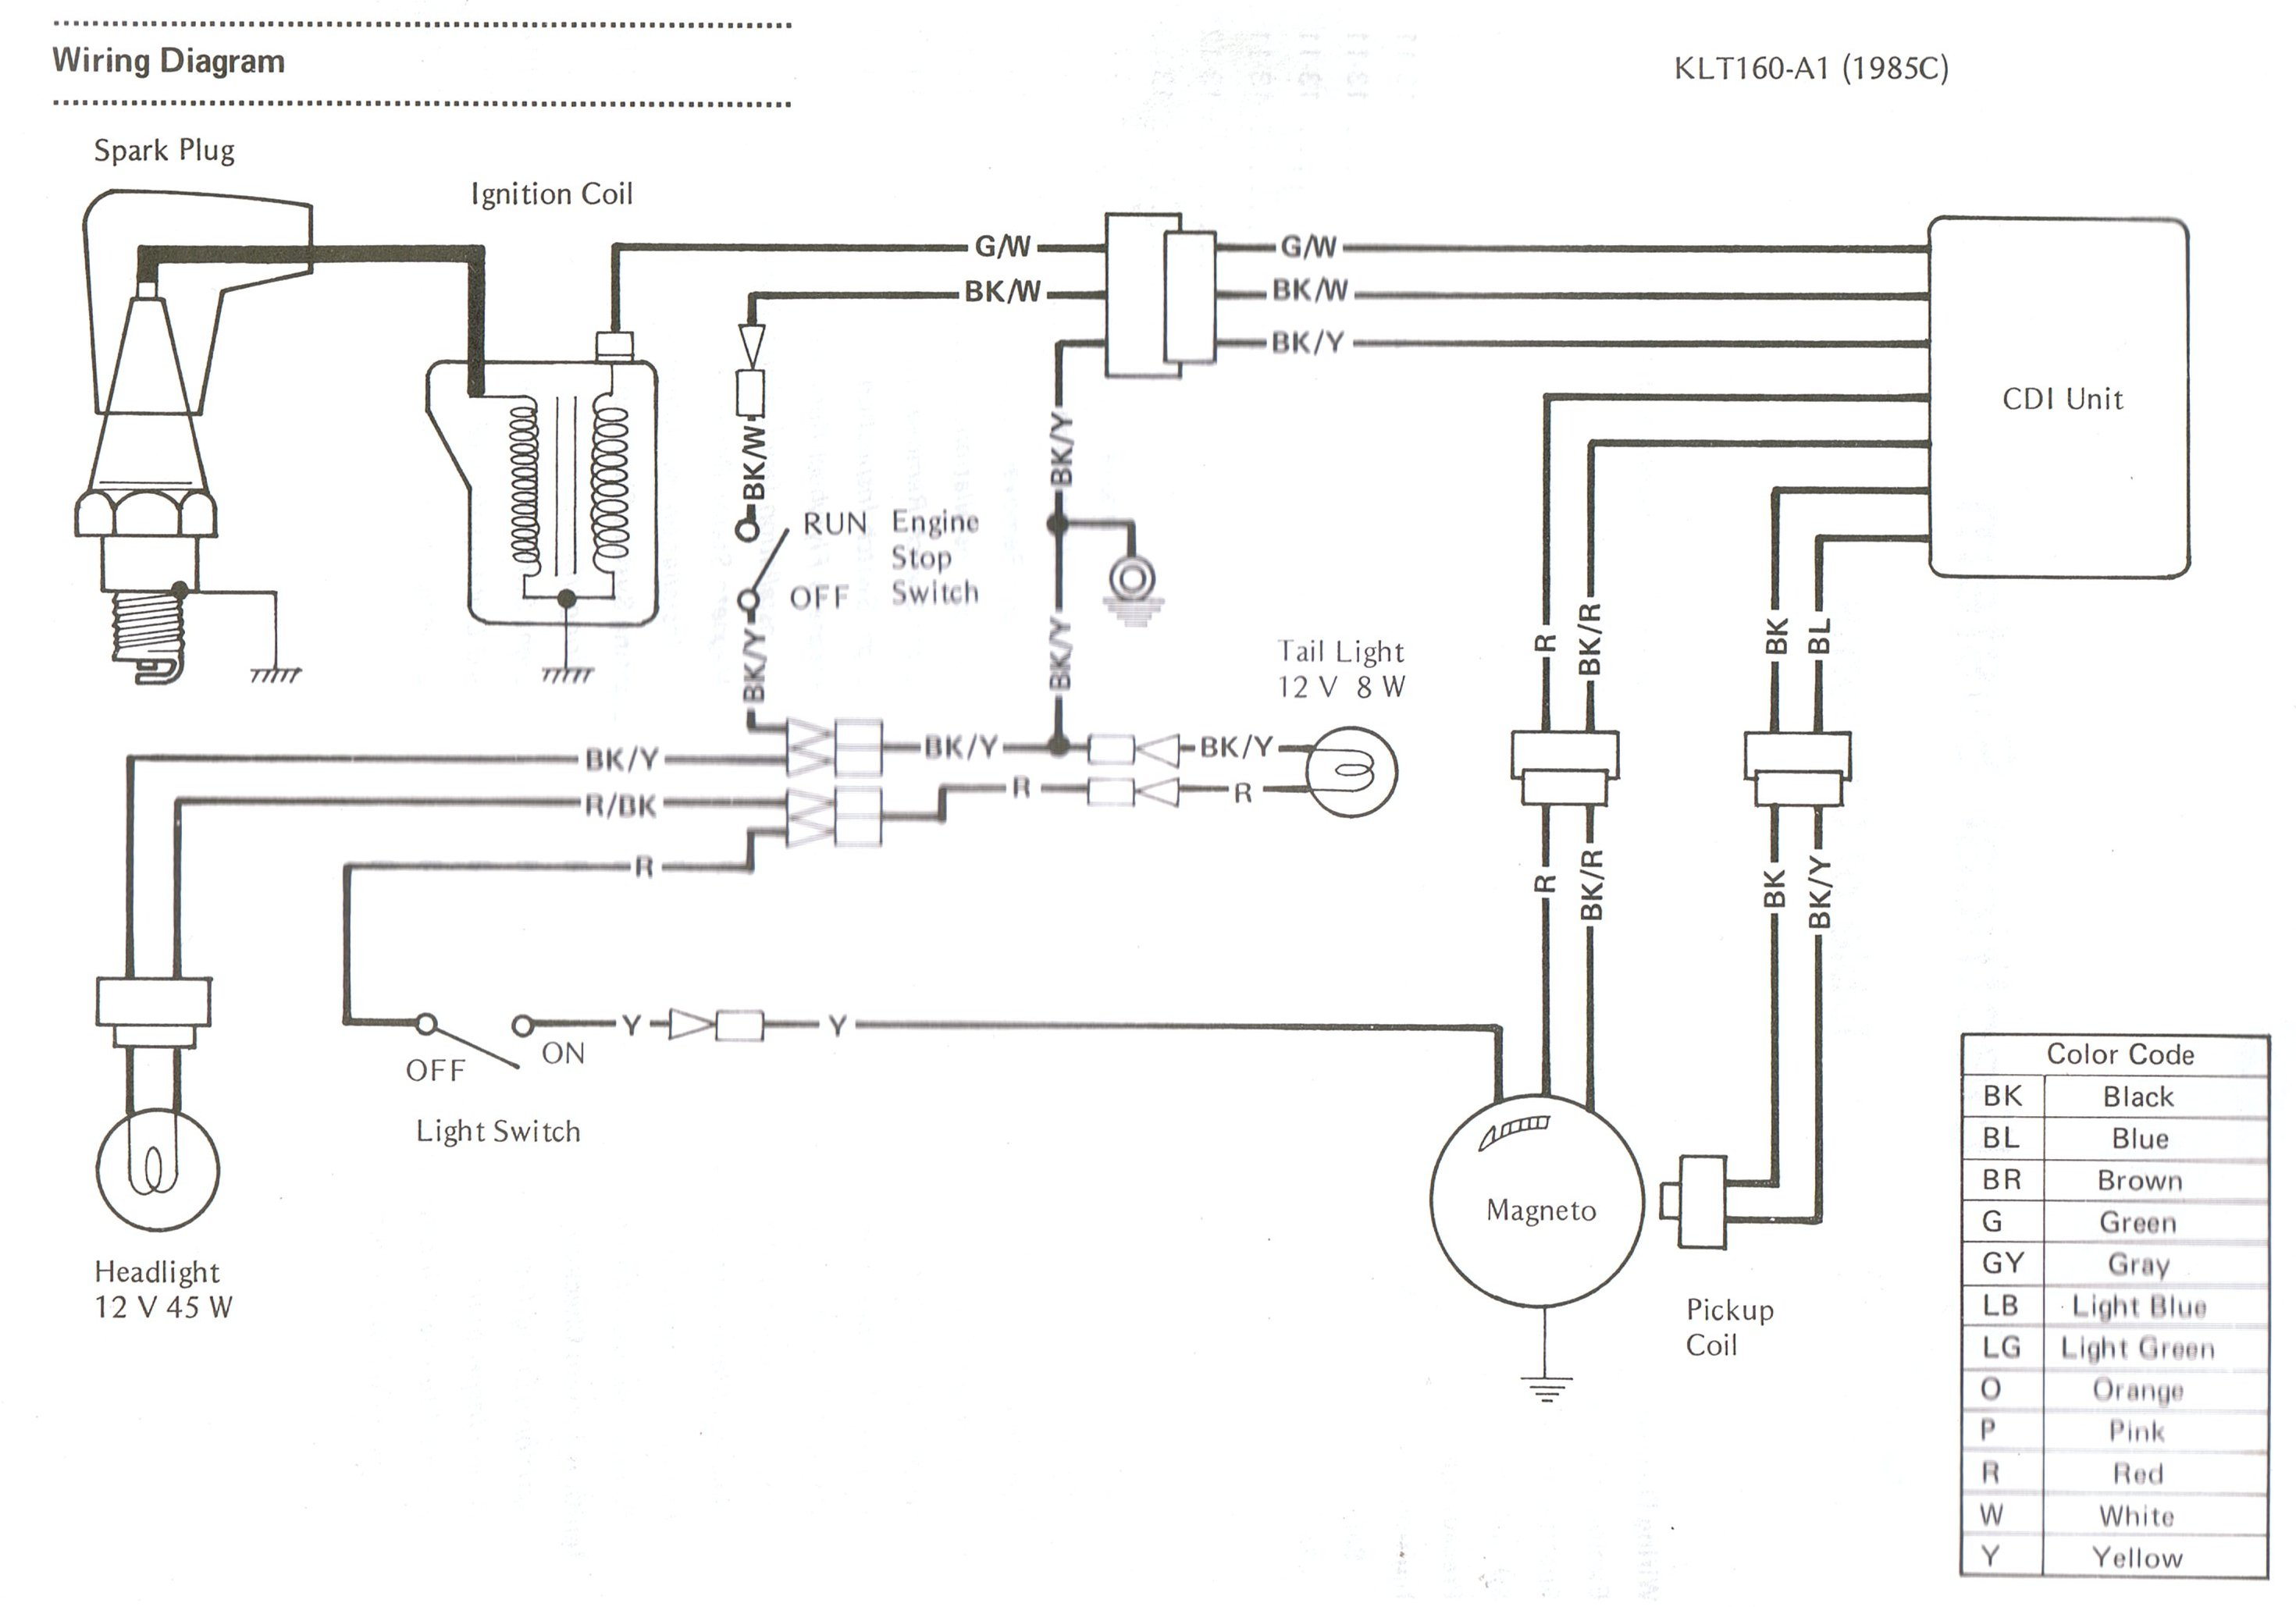 KLT160A1x85 3 wheeler world tech help kawasaki wiring diagrams 2006 kawasaki ninja 250r wiring diagram at gsmx.co